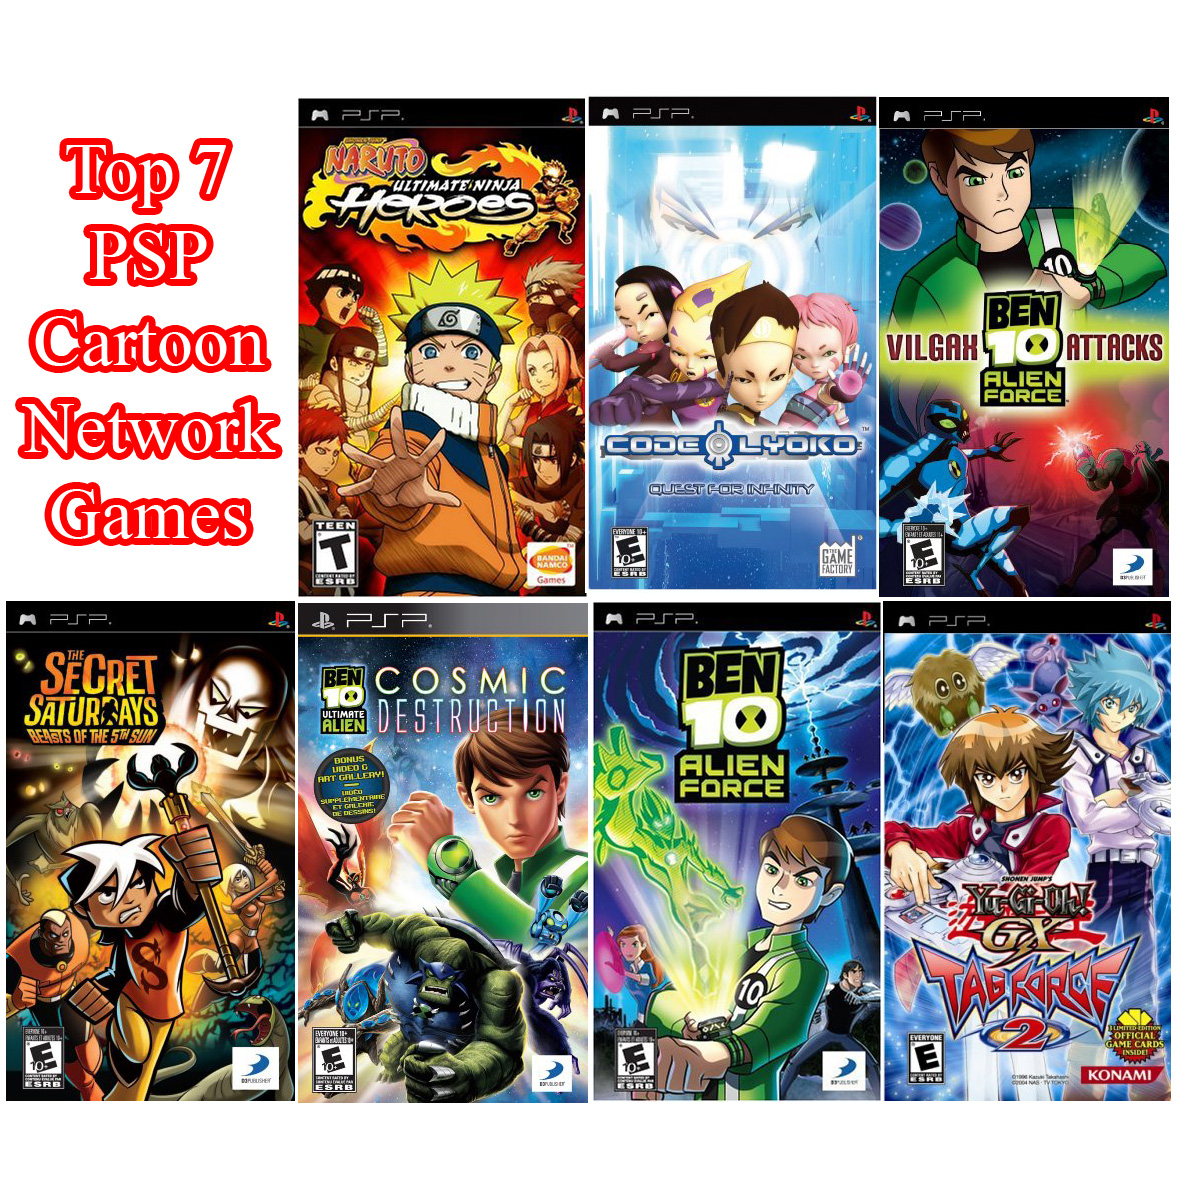 best dating games for psp My best friend got the original sims game when it came out in 2000, and i remember staying up late with her playing it for hours it was so much fun being able to create our own world where we could be whoever we wanted to be and do whatever we wanted to do.